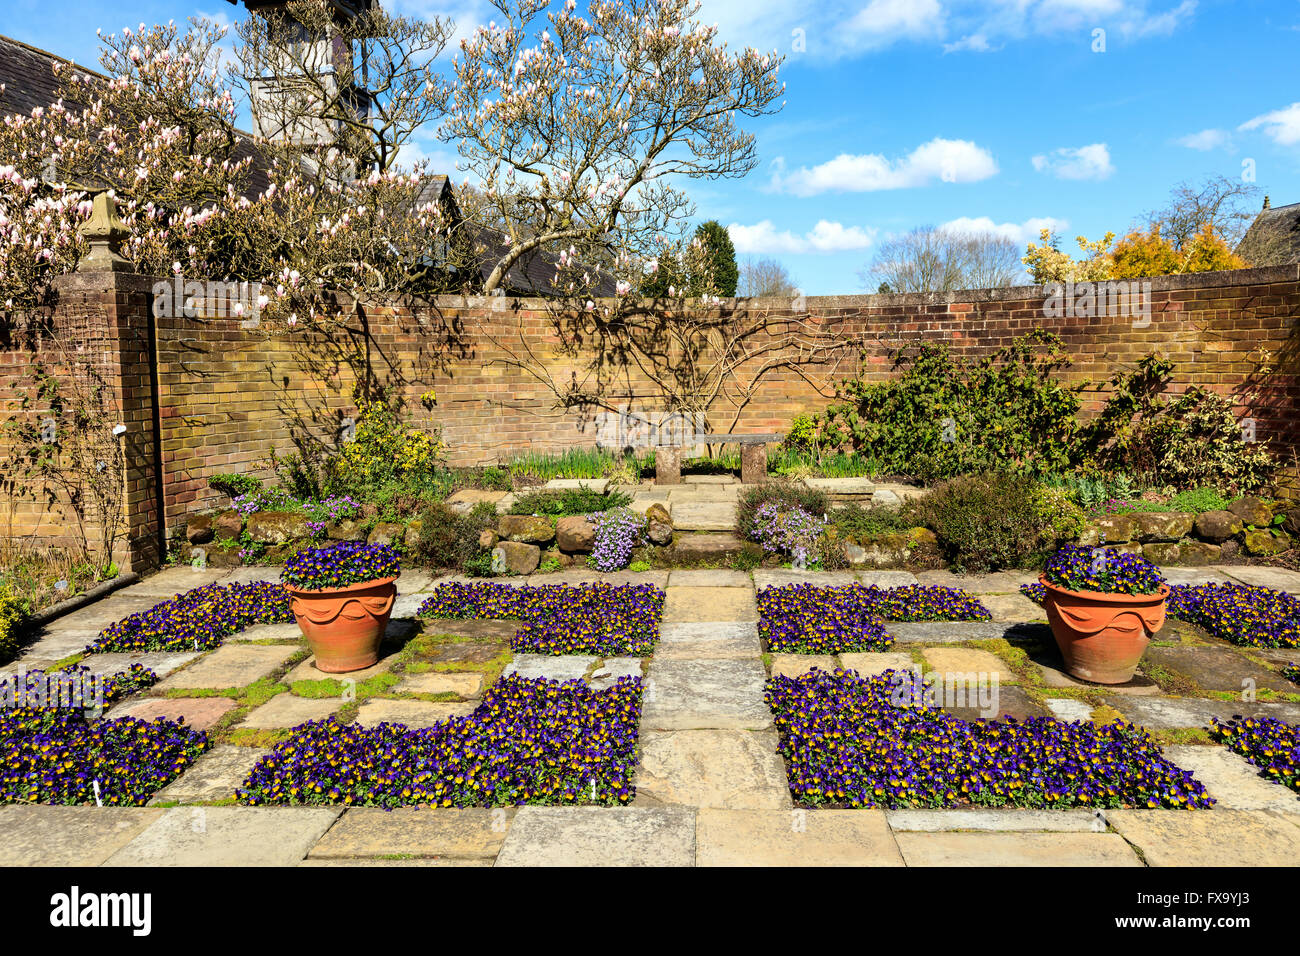 Flagged garden with violas and a magnolia tree. Stock Photo